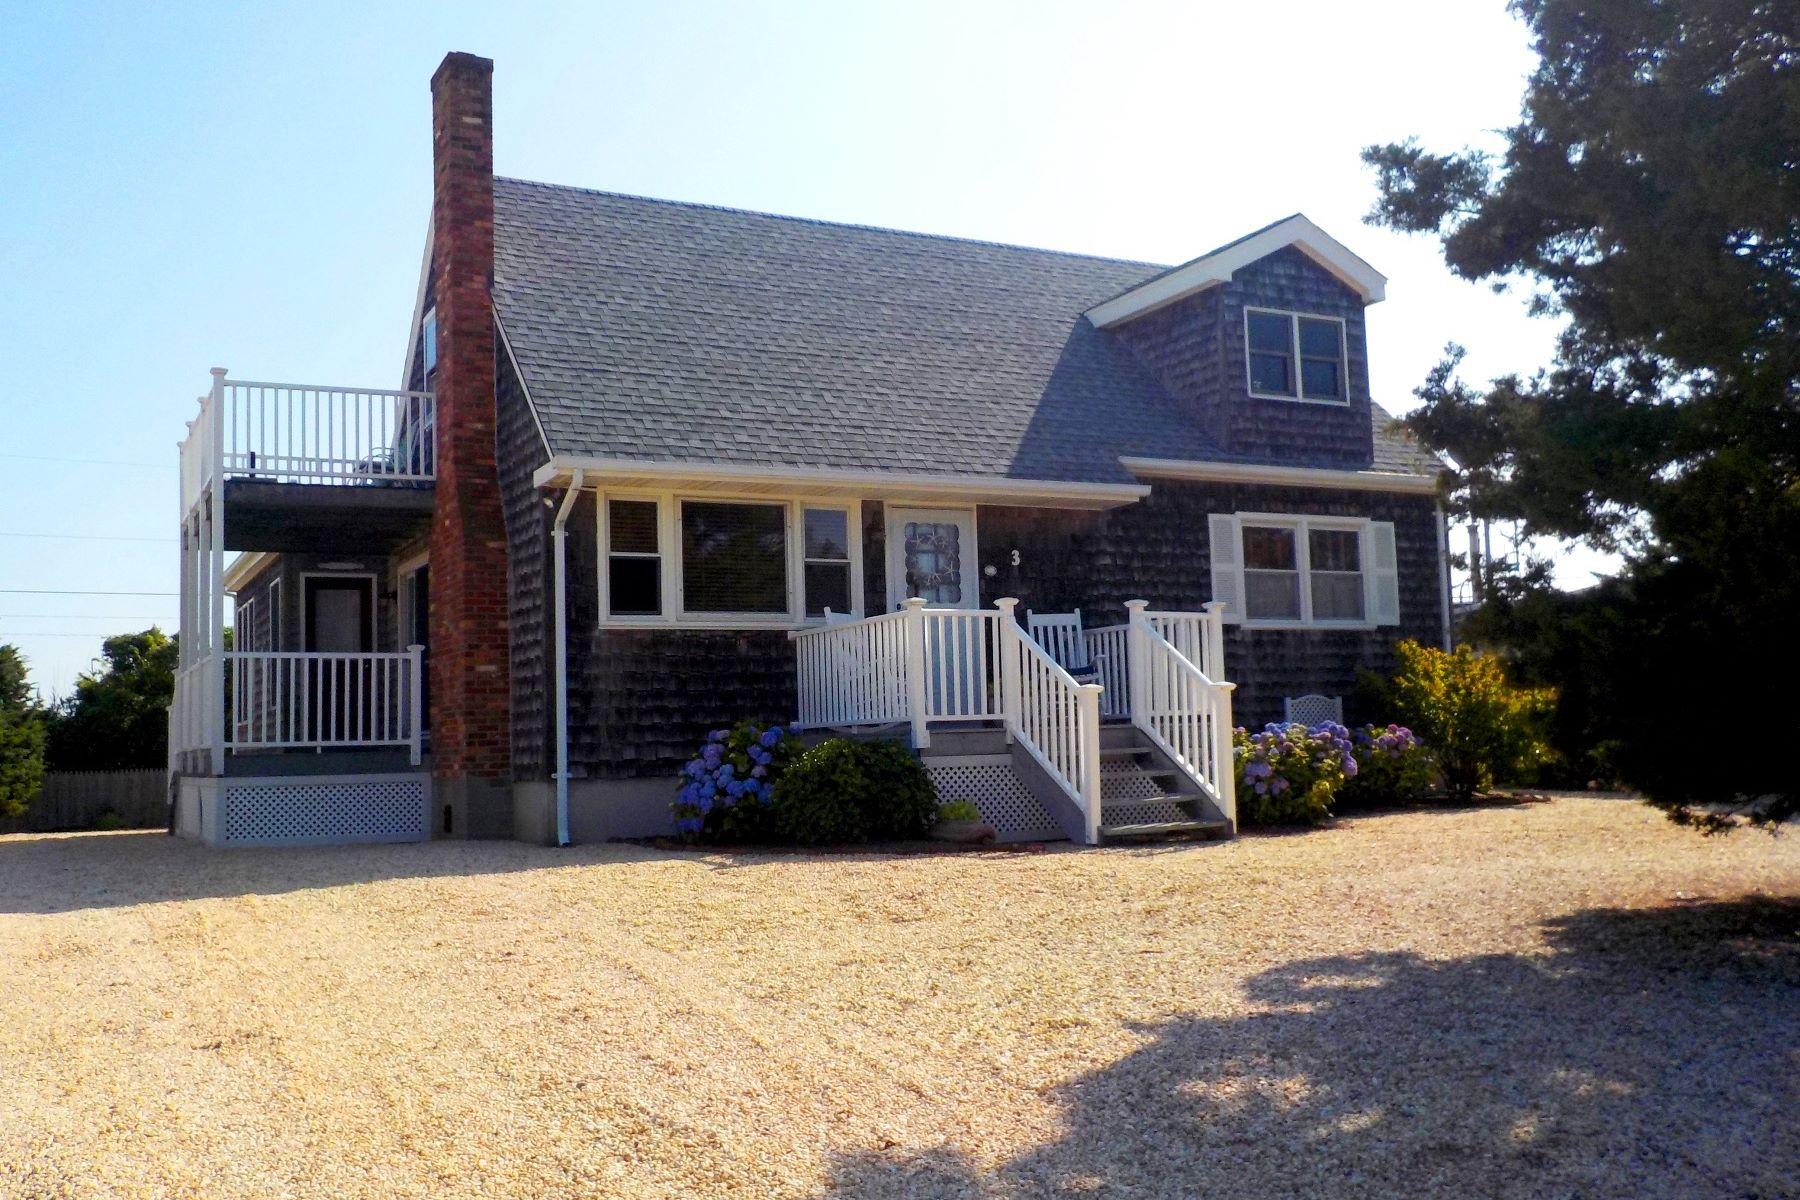 Moradia para Venda às THE BEACH HOUSE 3 Warwick Avenue Harvey Cedars, Nova Jersey 08008 Estados Unidos